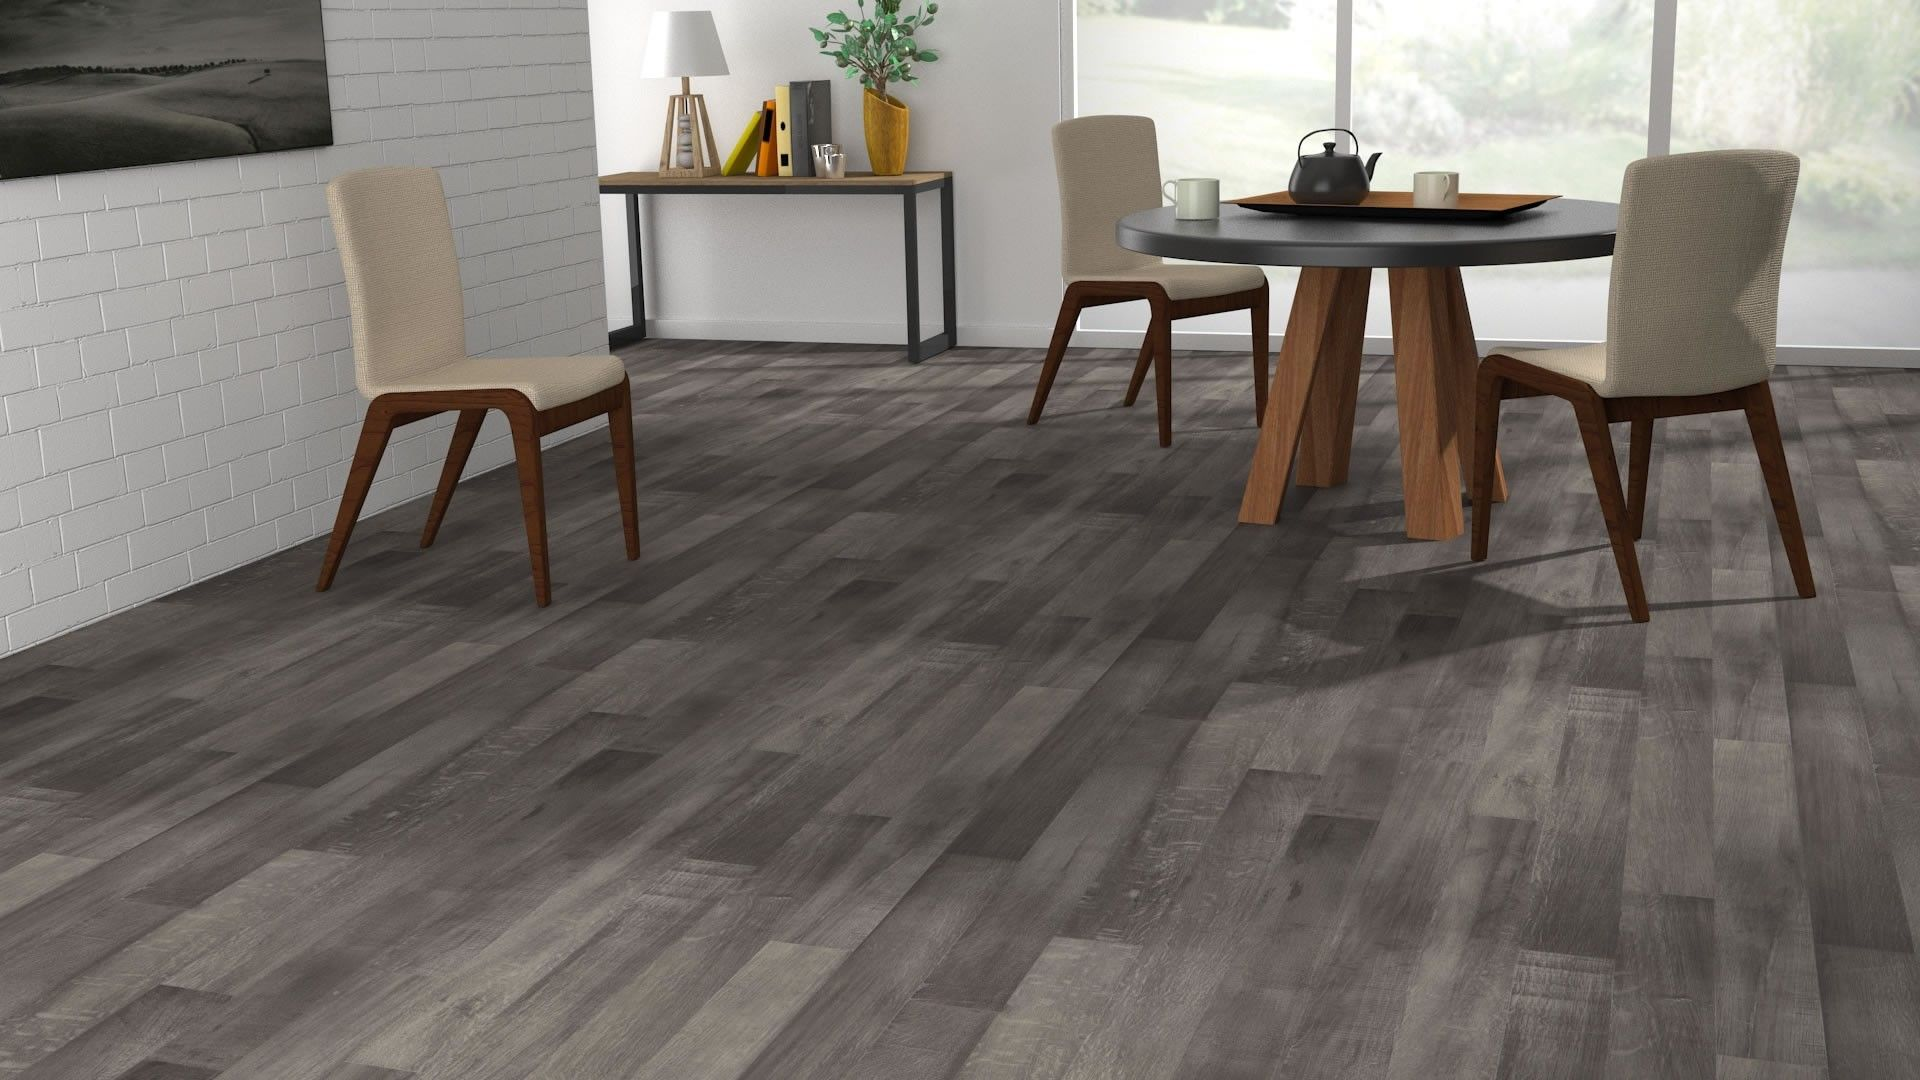 sol vinyle imitation parquet gris luna lub ron vinyl pinterest. Black Bedroom Furniture Sets. Home Design Ideas